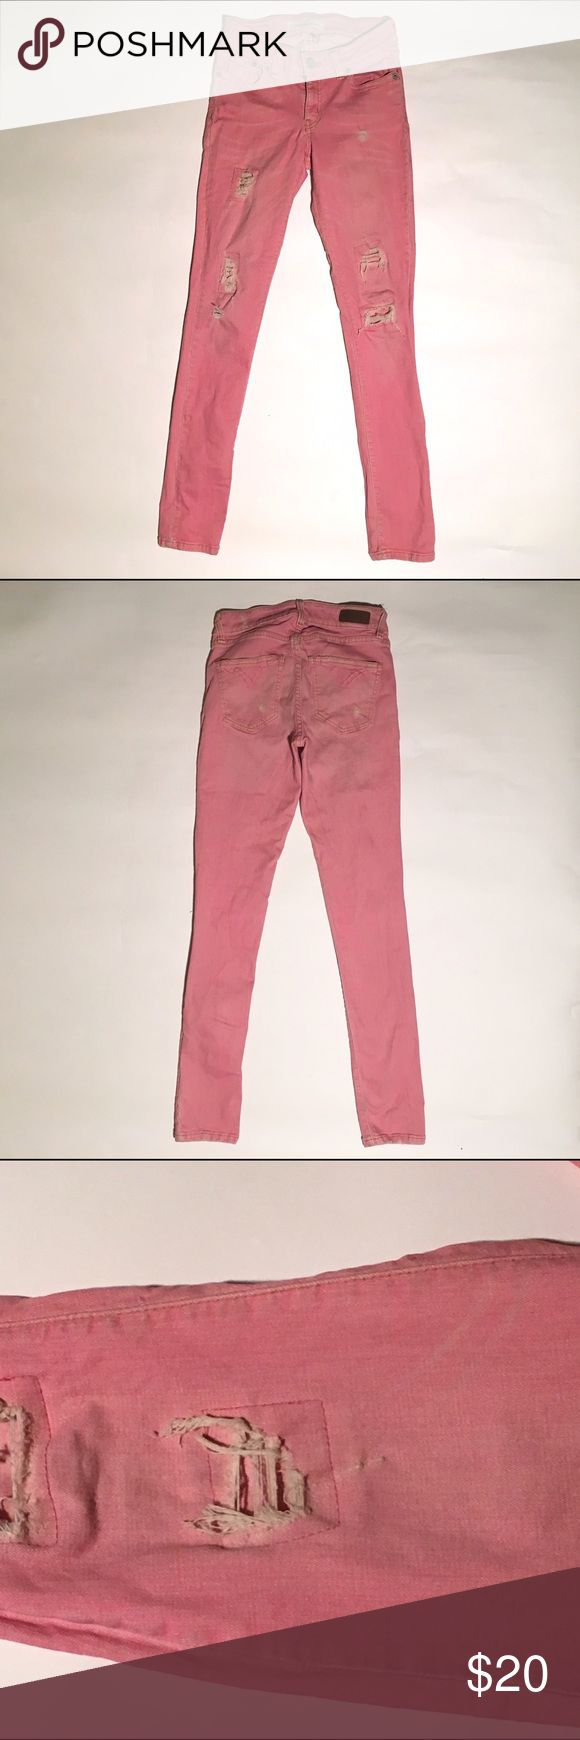 MF2 Denim pink Size 25 good condition distressed denim. Stretchy material and very soft. mf2 denim Jeans Skinny